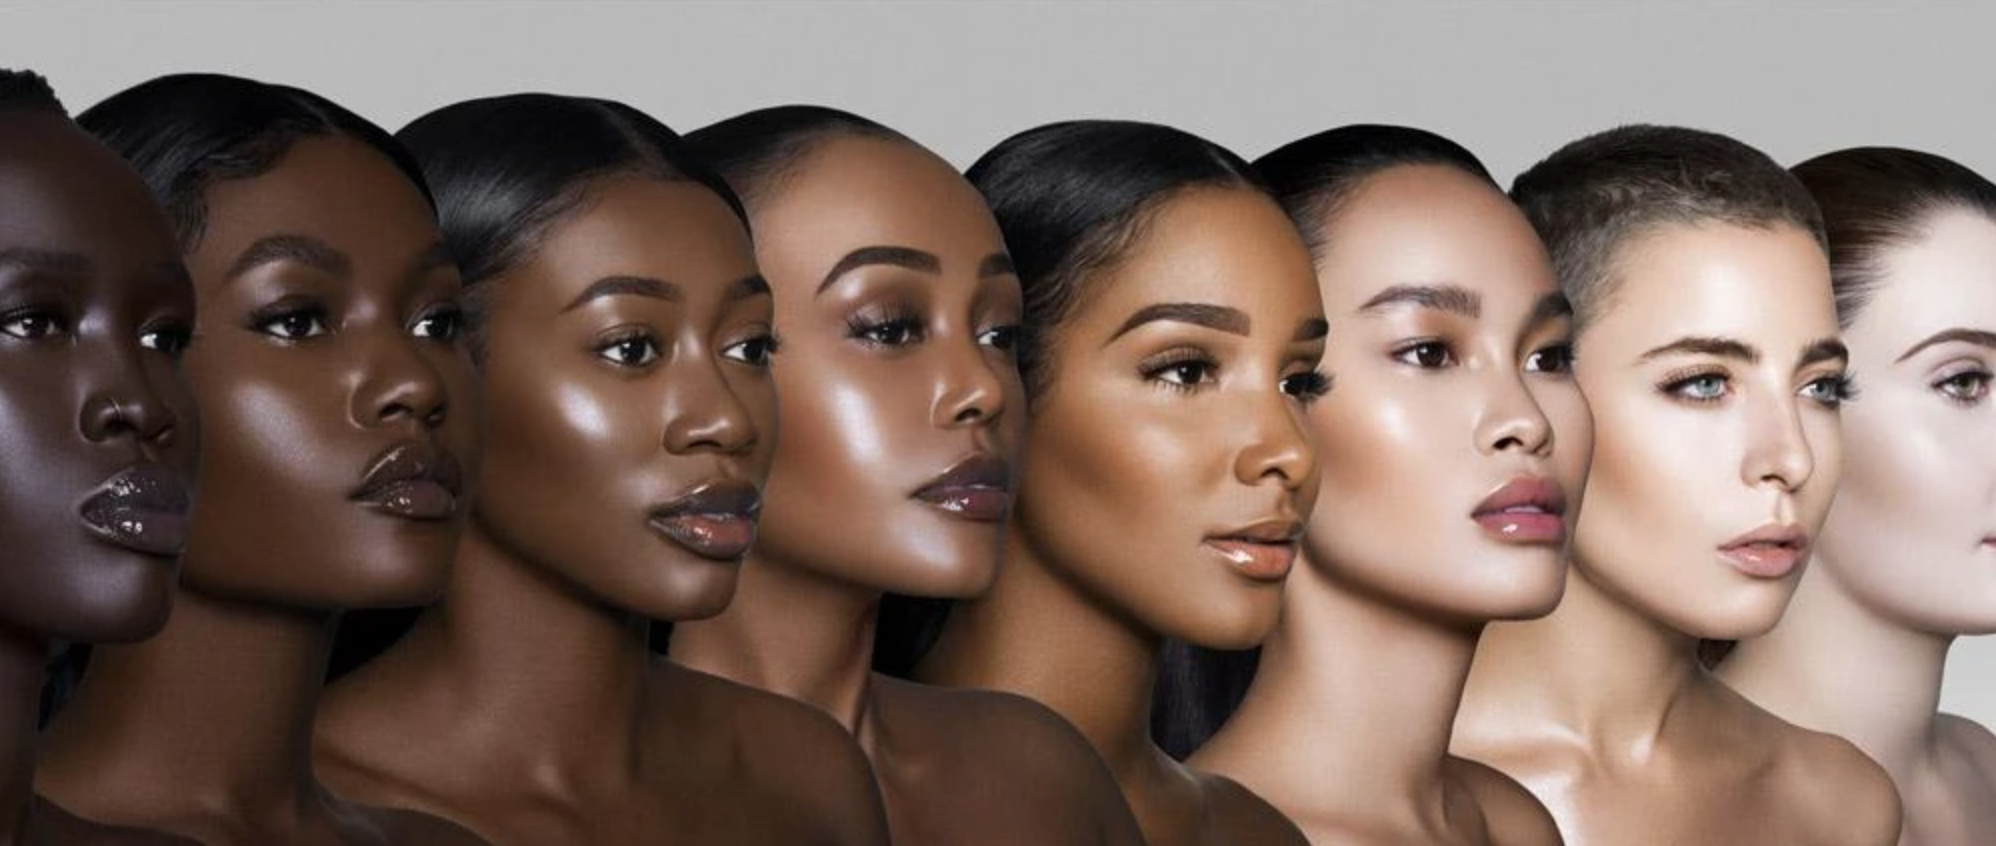 A diverse group of models poses in an advertisement for Juvia's Place.